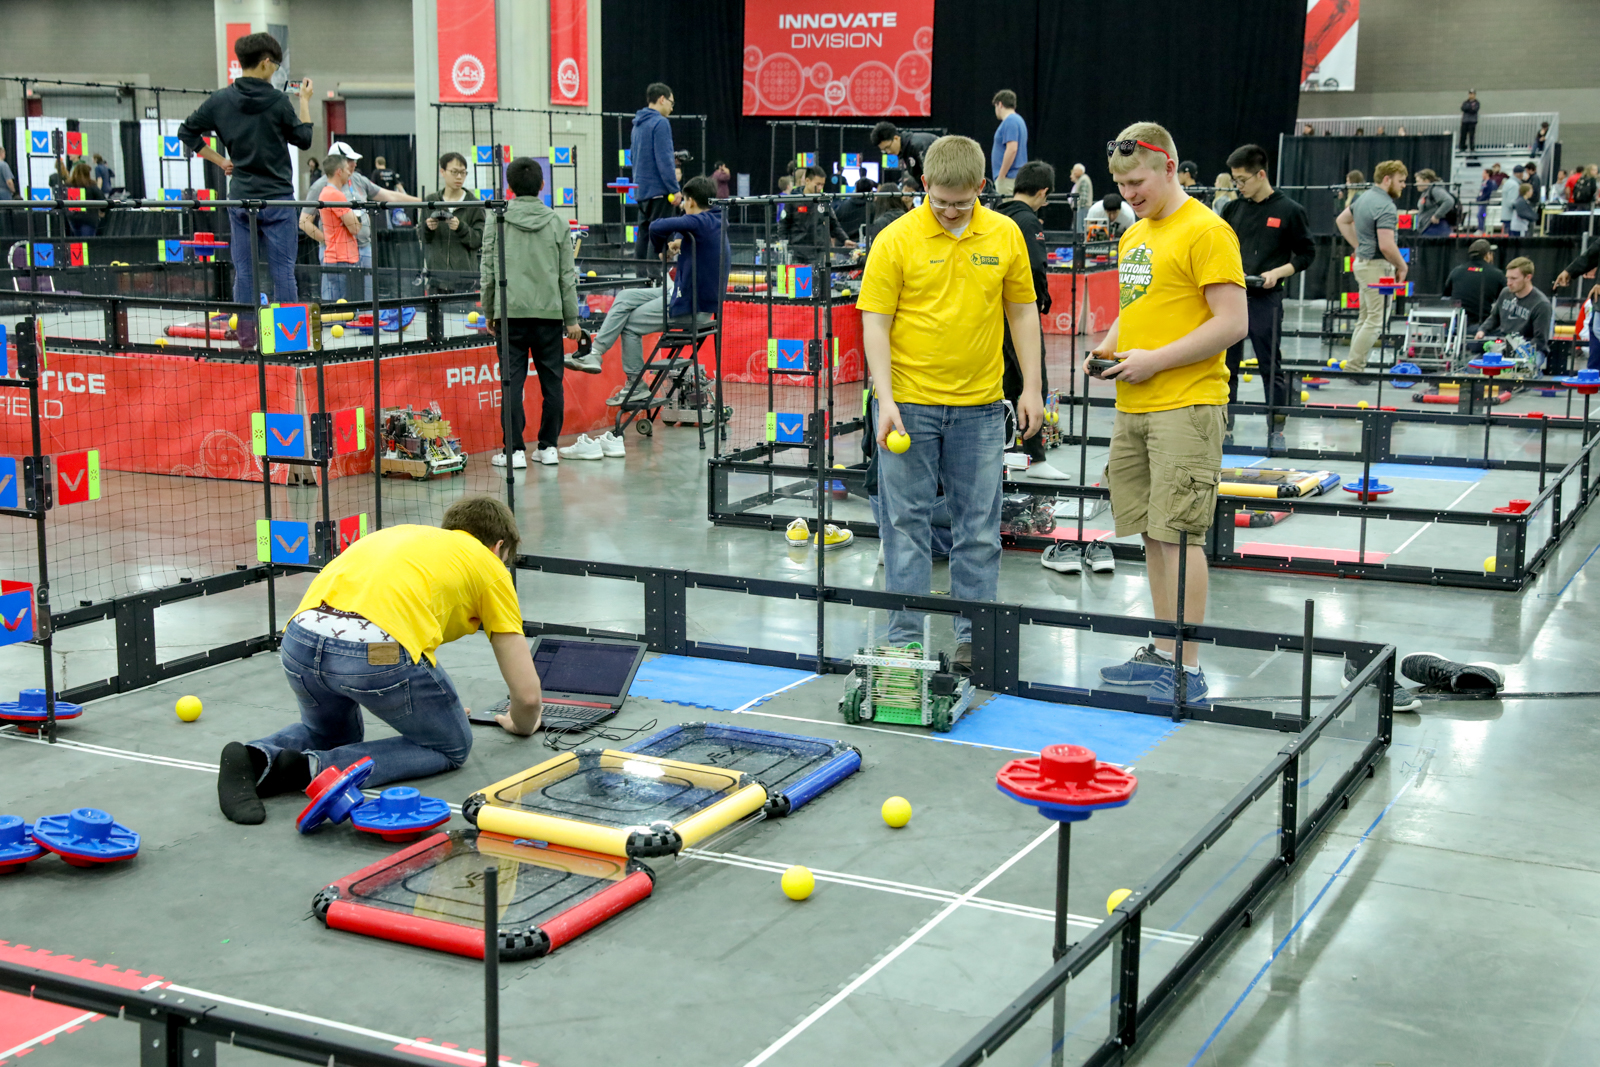 Photos 2019 Vex Robotics World Championship Wtaj Www Wearecentralpa Com Play the classic card game hearts online for free, against the computer or your friends. 2019 vex robotics world championship